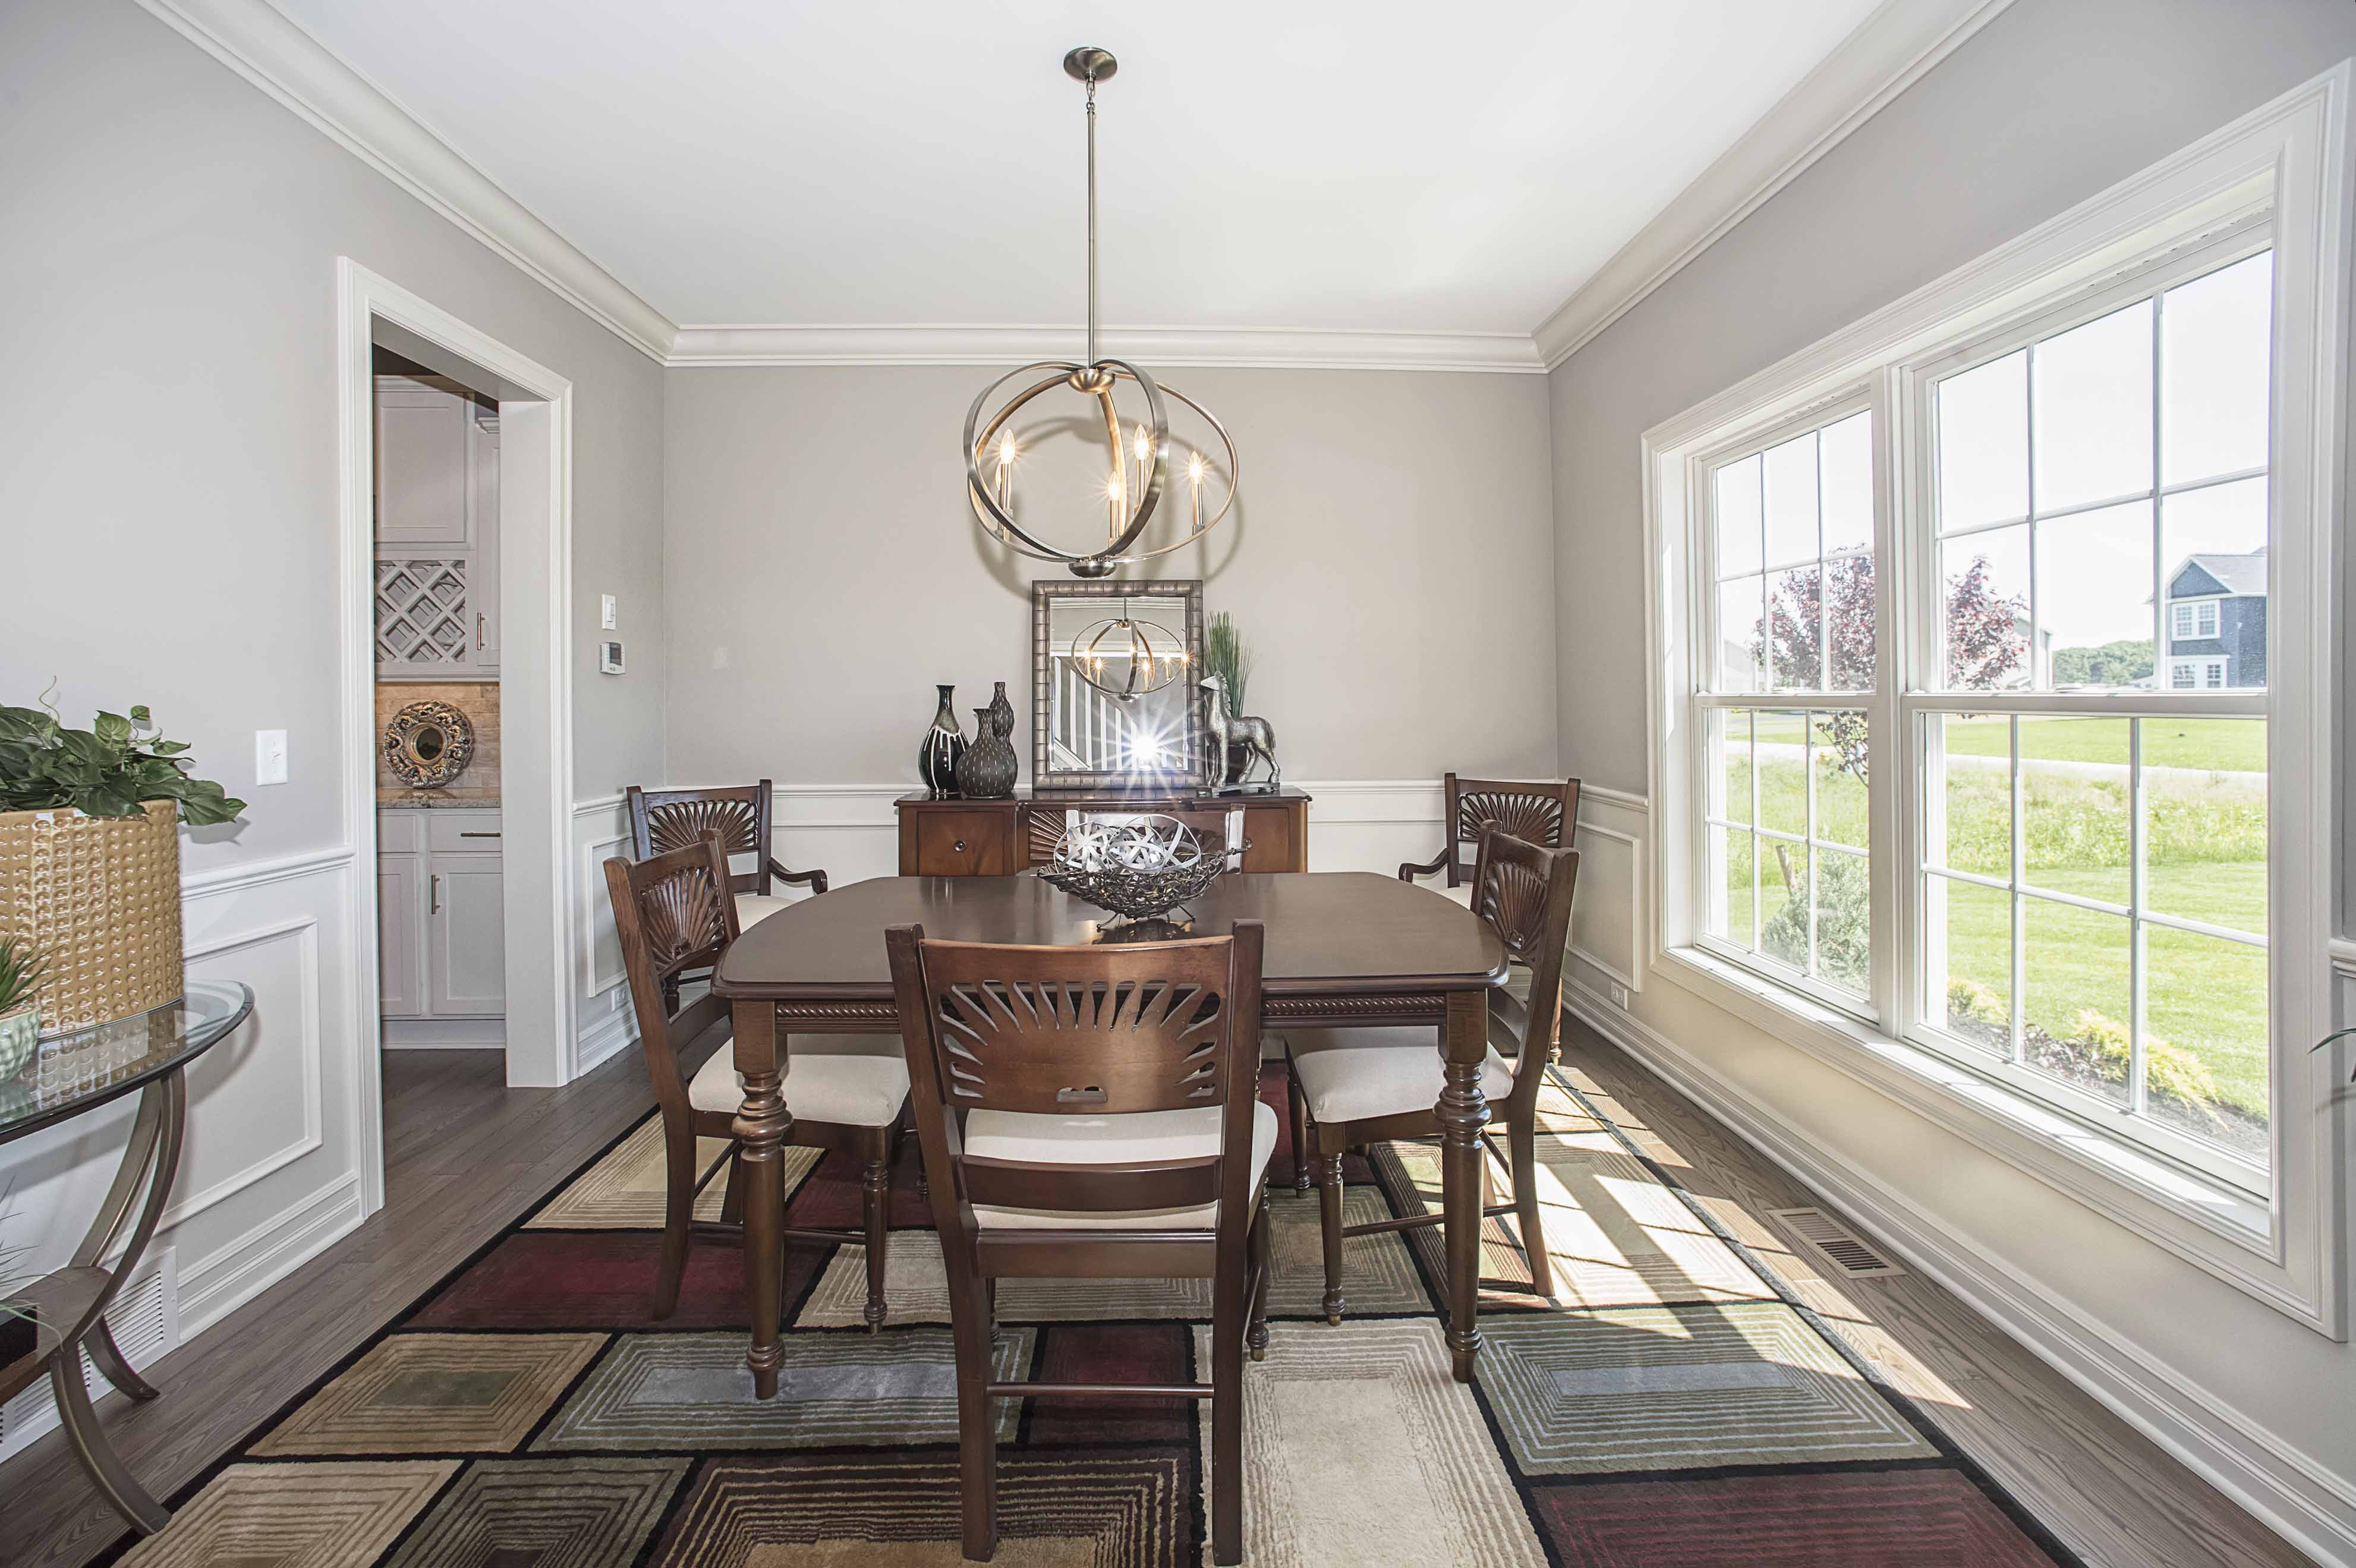 Es Homes shows its timeless 'Weston' model in Orchard ... on home garden design, home greenhouse design, home orchard fruit tree, home orchard irrigation system, home orchard plan, home winery design, home fruit orchard layout, home aquaponics design, home virginia design,